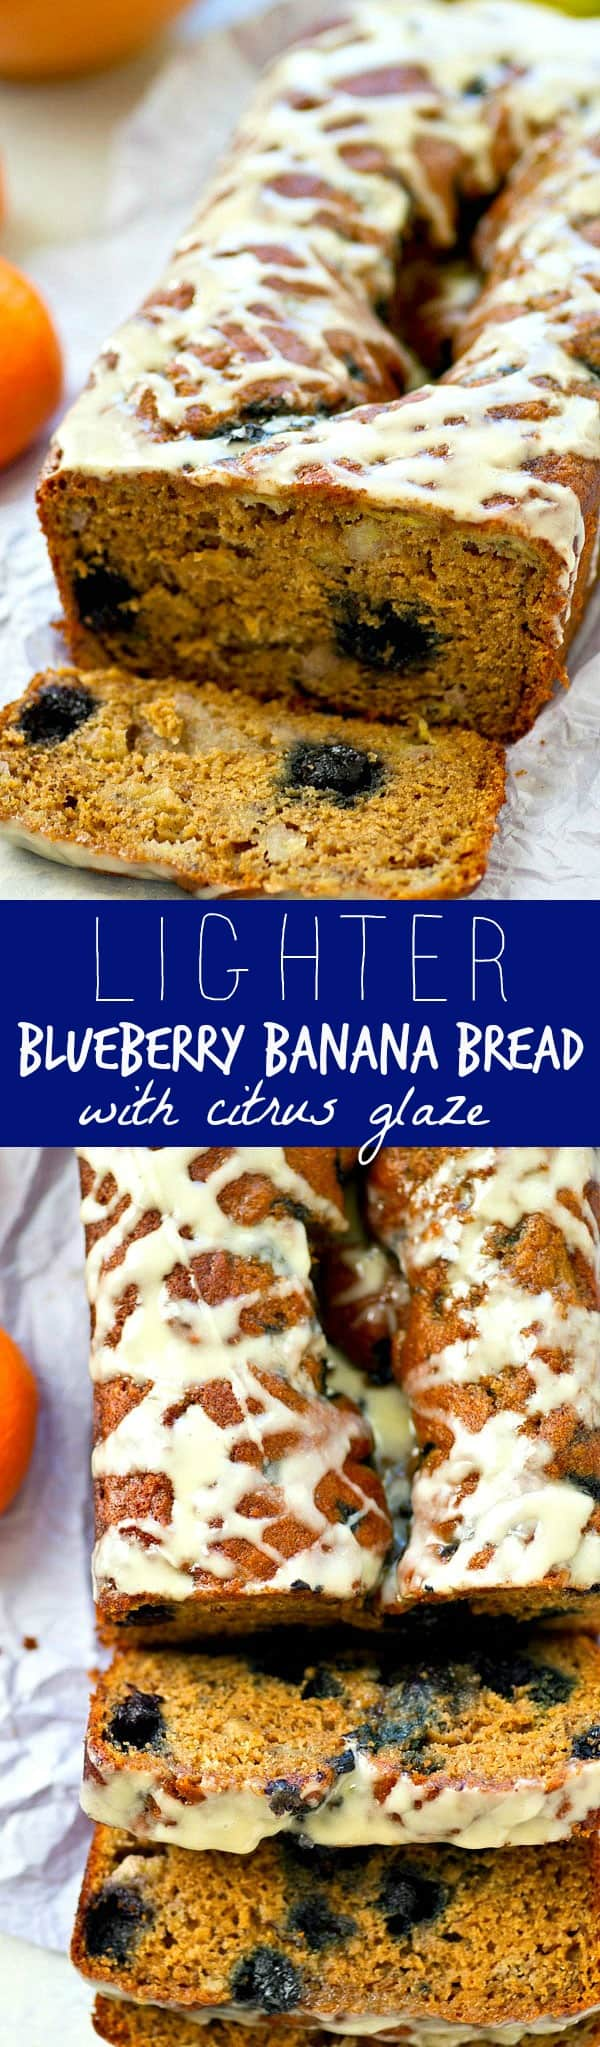 Blueberry banana bread gets a lighter makeover! This easy one-bowl banana bread is studded with tons of juicy blueberries and drizzled in a tangy, irresistible citrus glaze.